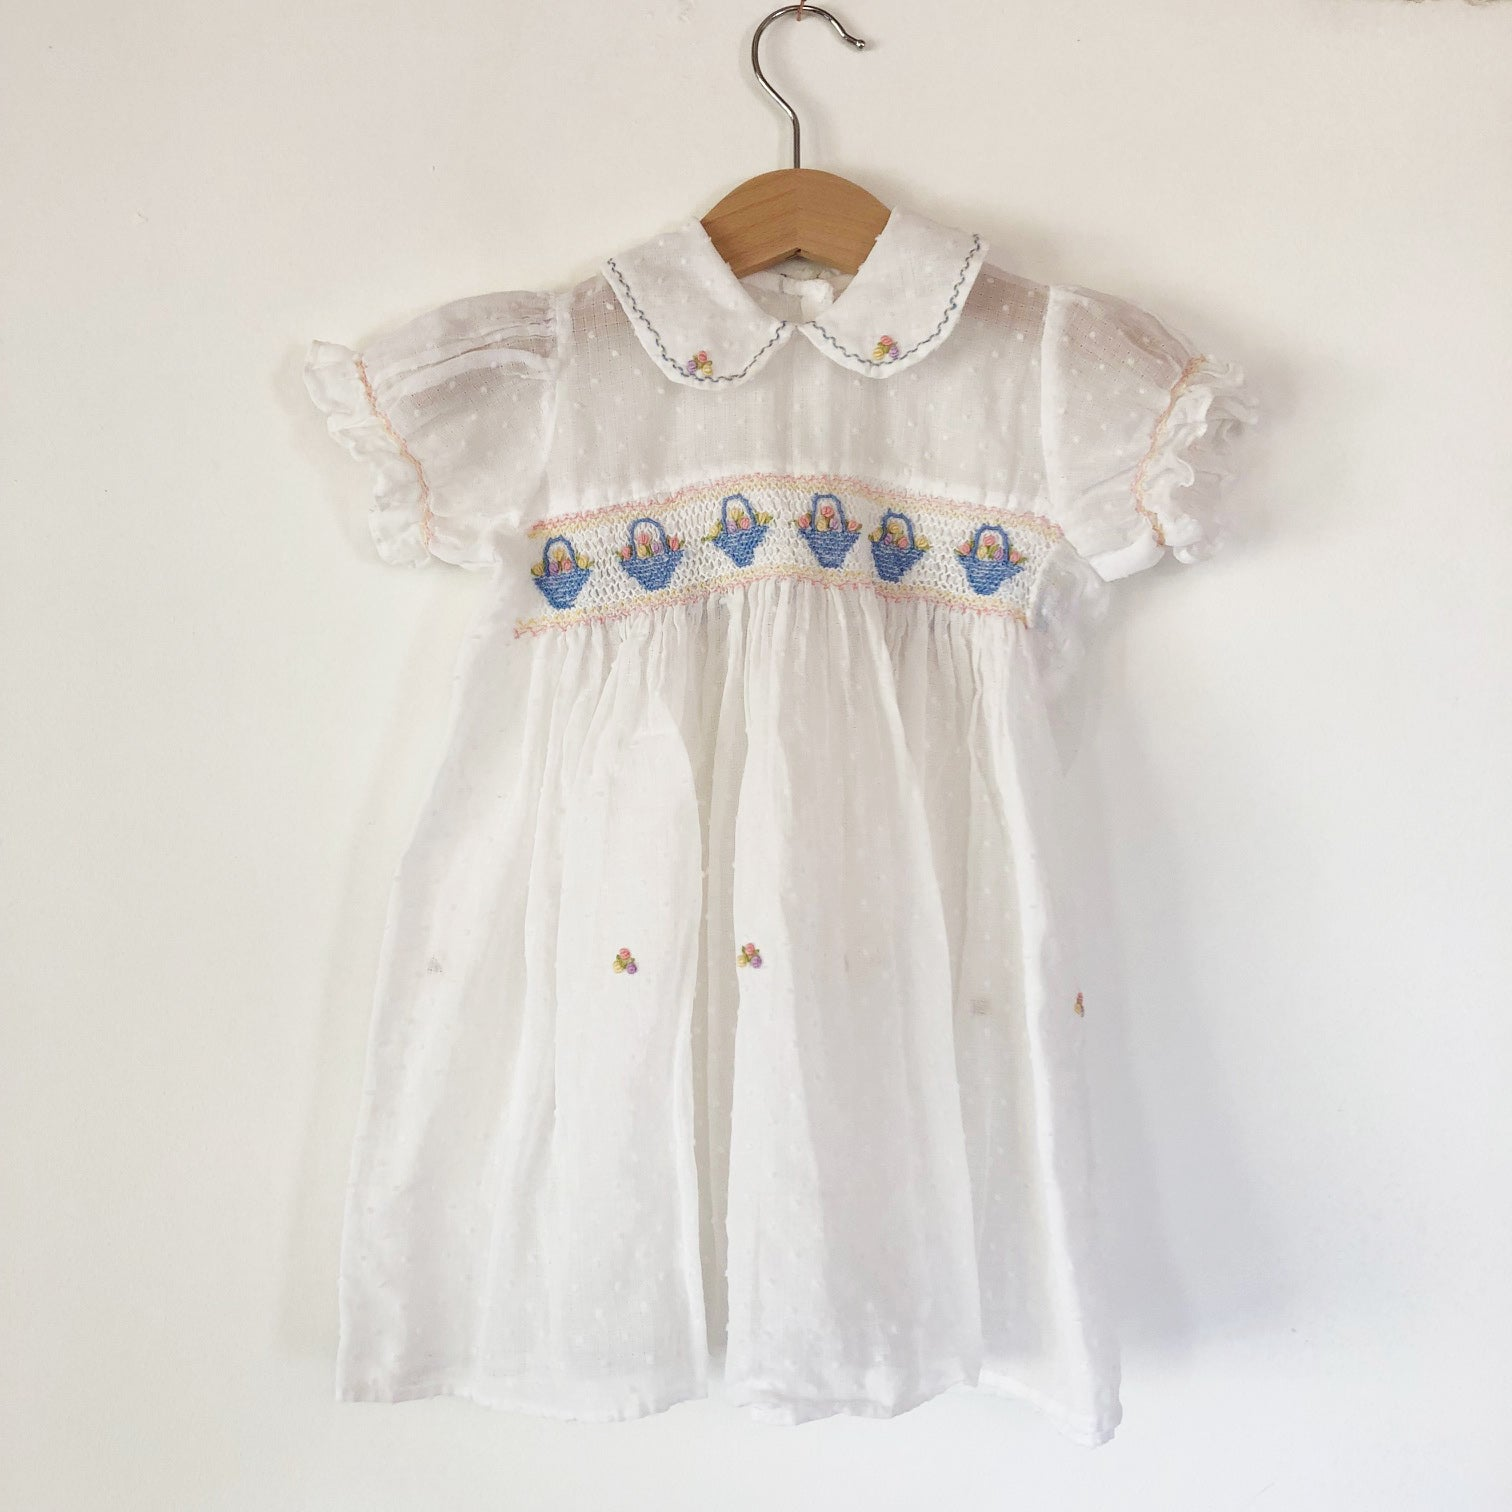 Embroidered Little Polka Dot Dress size 12 months